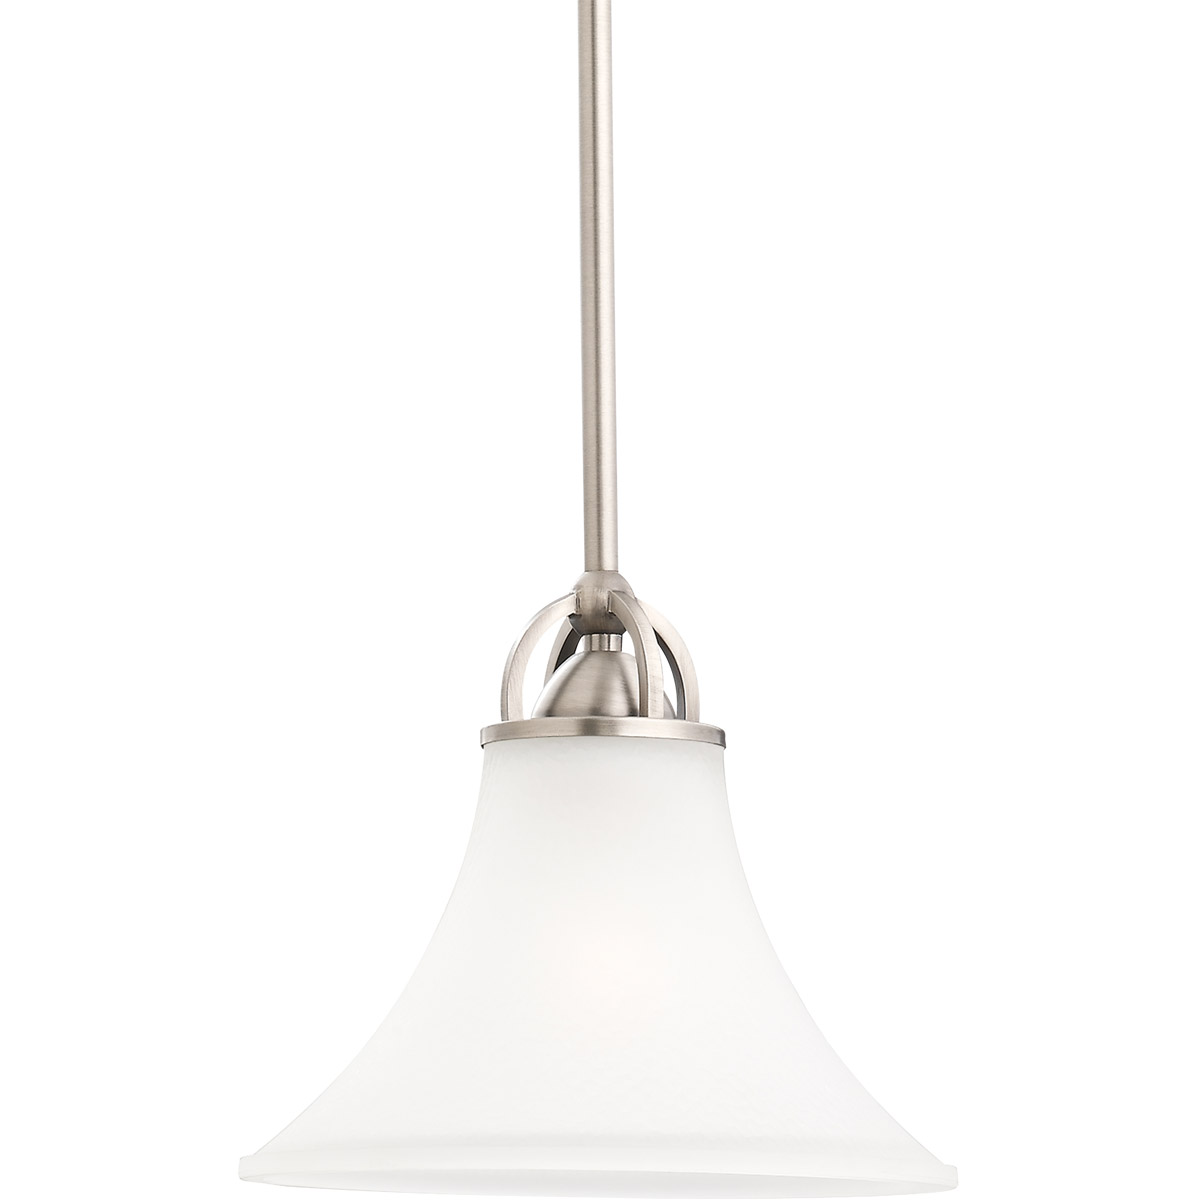 Sea Gull 61375-965 Somerton 1 Light 9 inch Antique Brushed Nickel Mini Pendant Ceiling Light in Satin Etched Glass, Standard photo